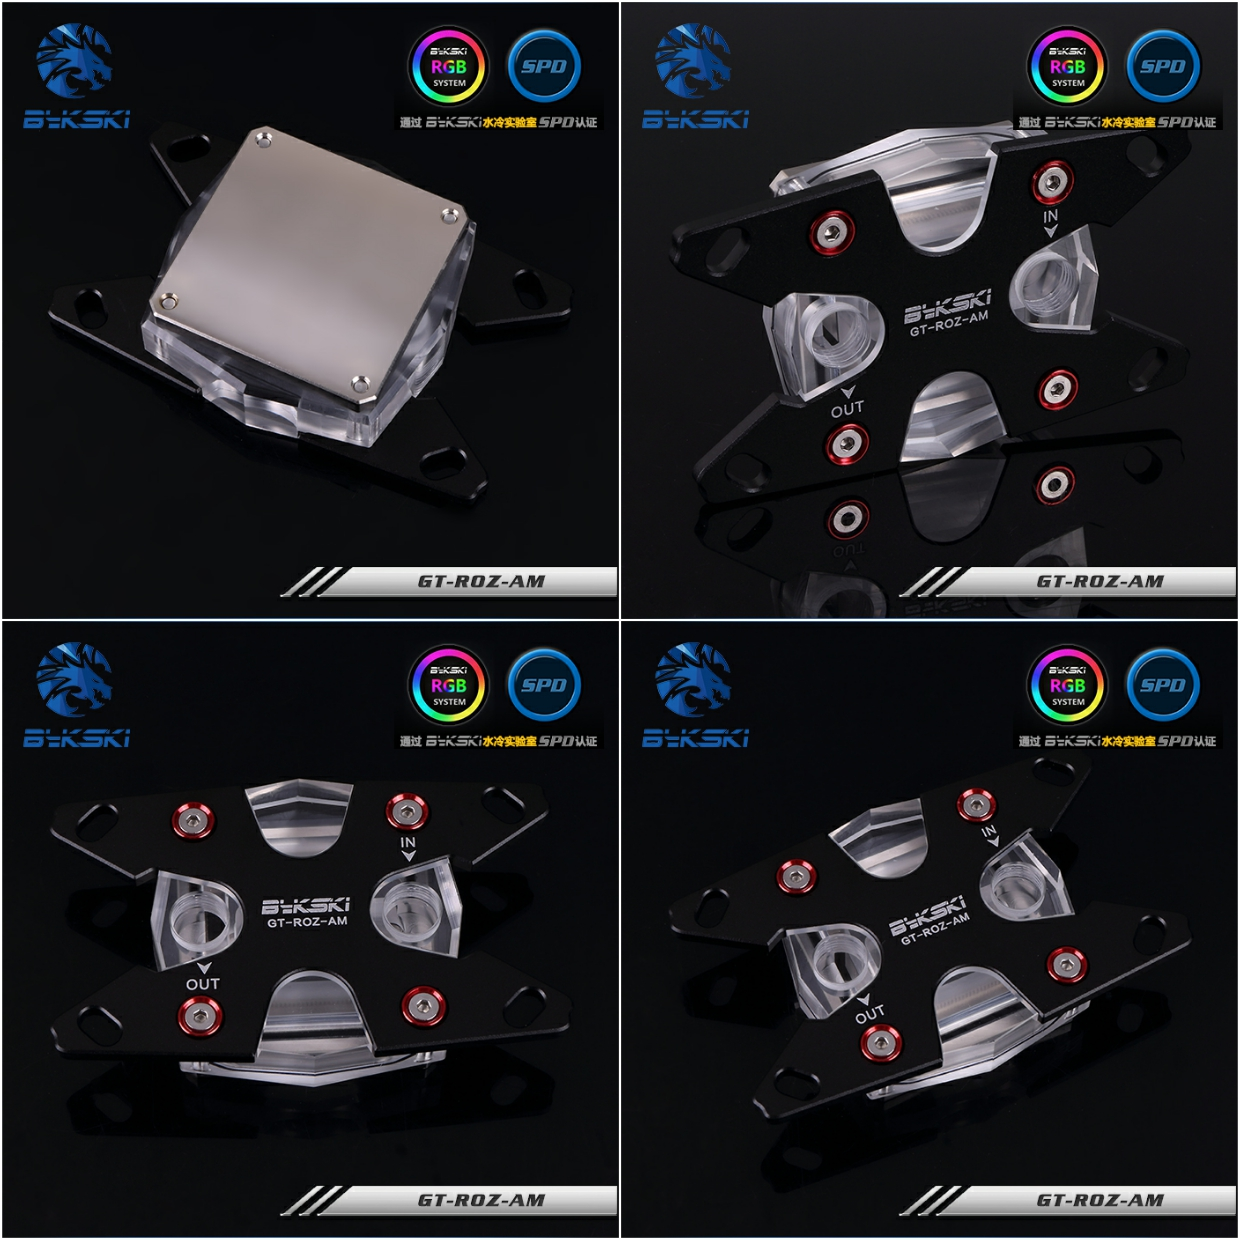 Bykski GT-ROZ-AM Water Cooling CPU Block for AMD AM2 AM3 AM4 Ryzen Black bykski water cooling radiator cpu block use for amd threadripper 940 am2 am3 am4 x399 1950x rgb or aurora light radiator block